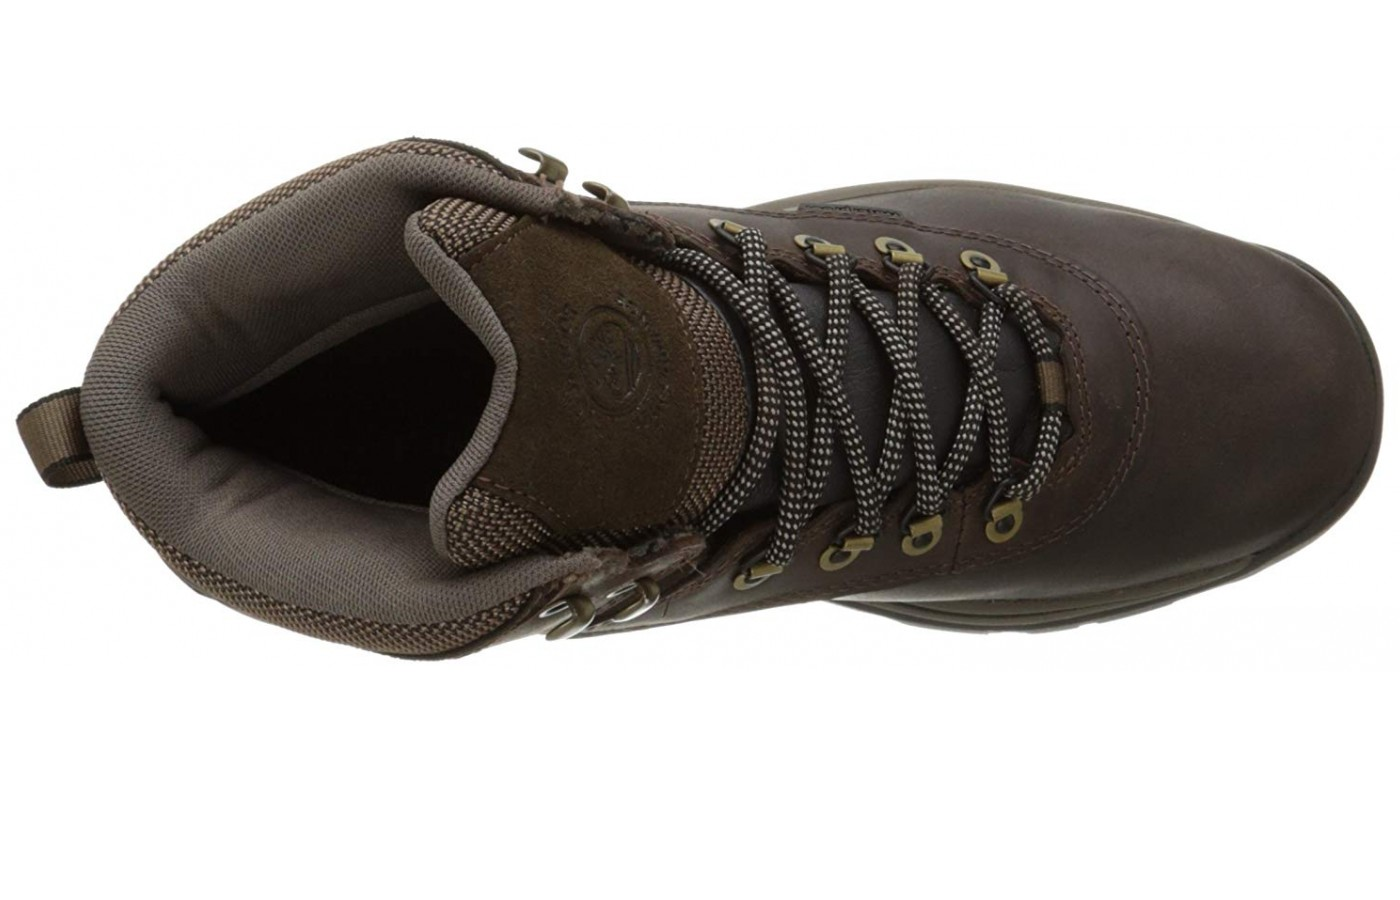 The uppers are made of 100% premium full-grain waterproof leather for comfort and durability